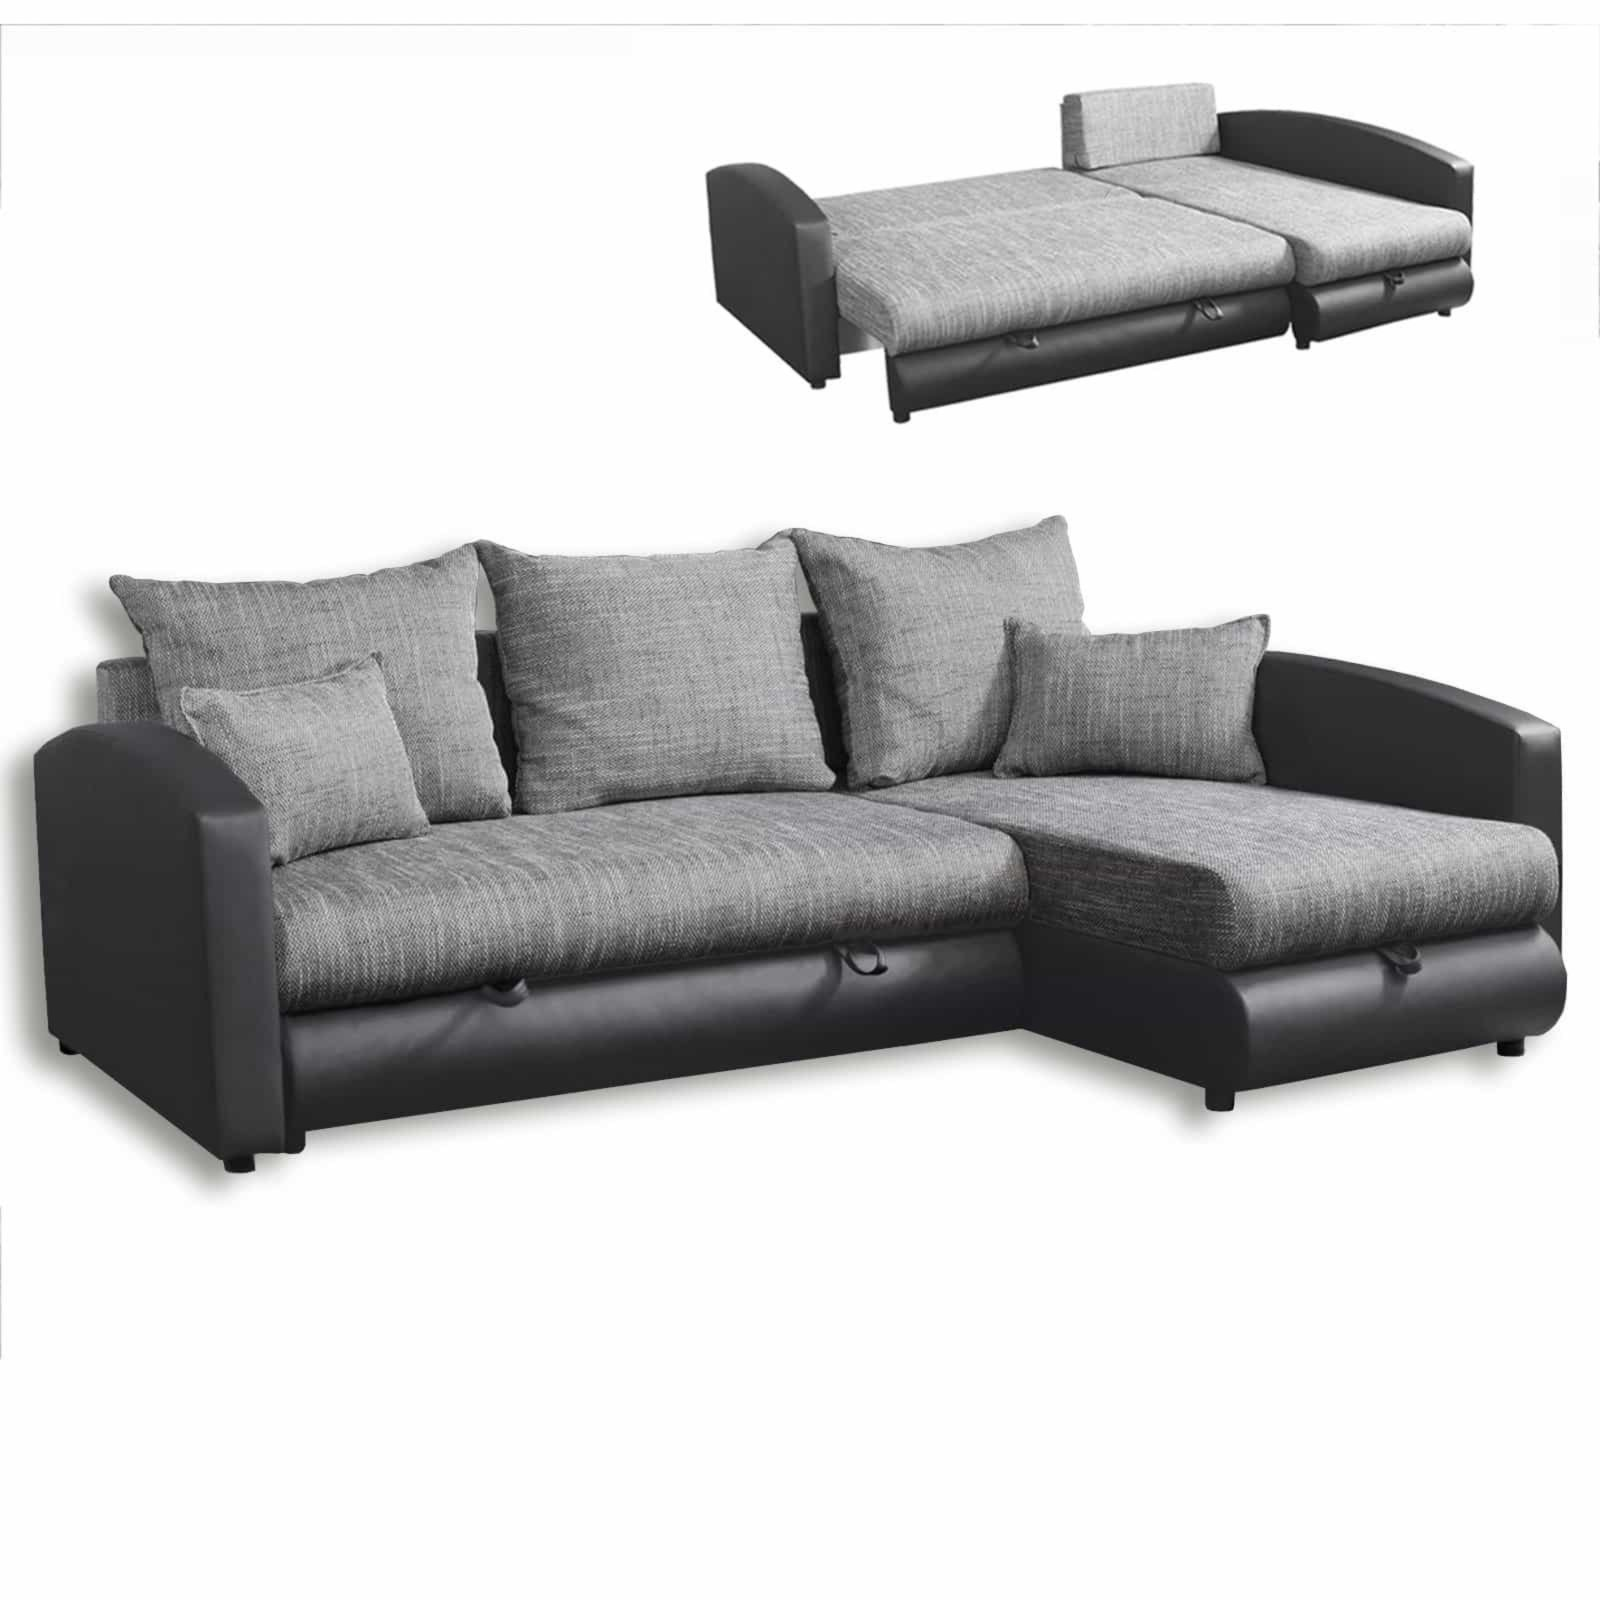 ecksofa anthrazit grau mit liegefunktion ecksofas l form sofas couches m bel. Black Bedroom Furniture Sets. Home Design Ideas